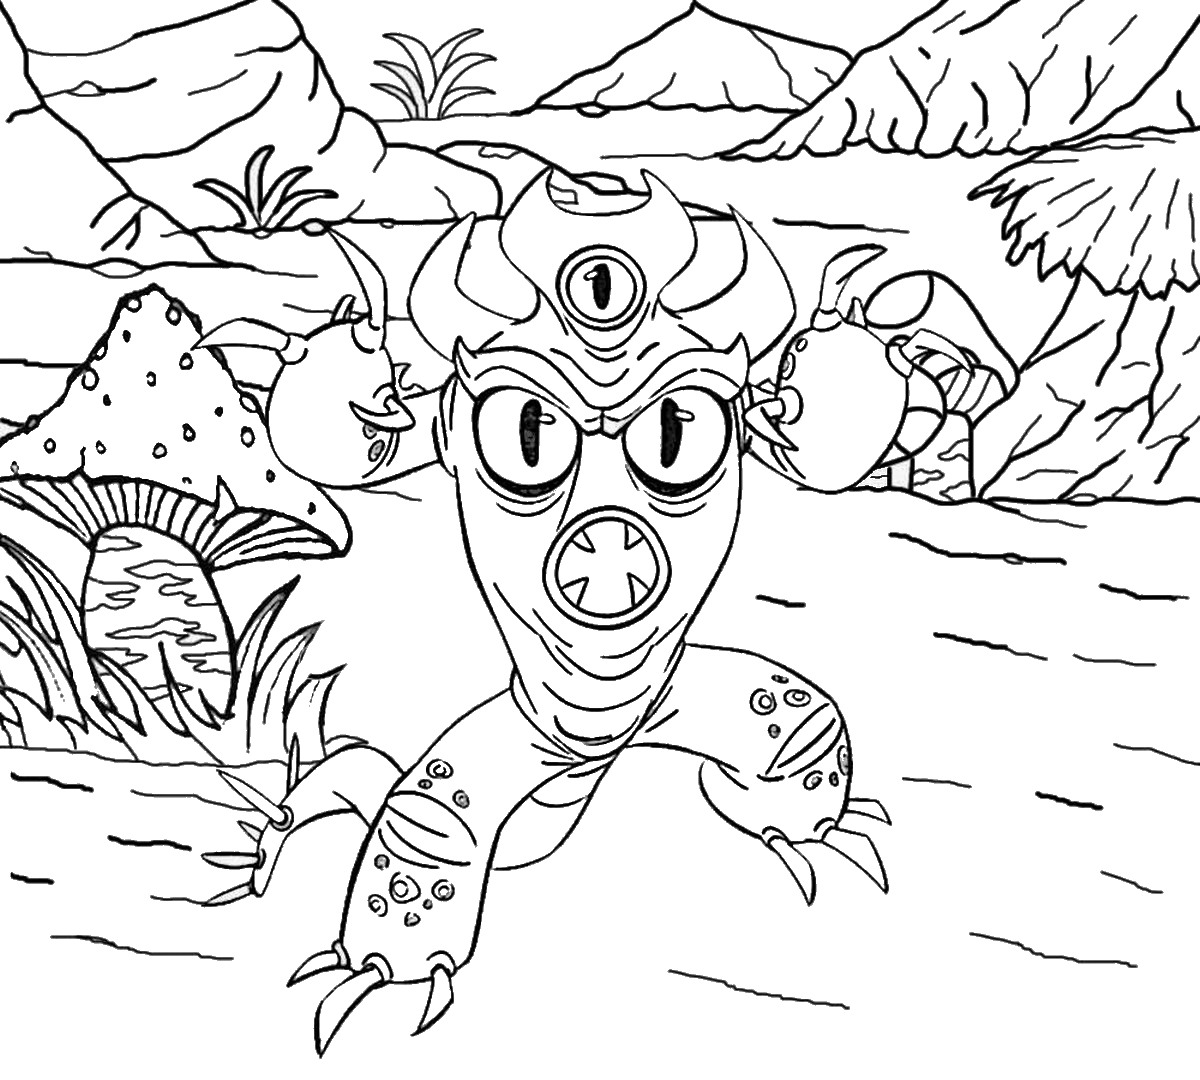 printable coloring pages for 6 year olds coloring pages for 6 year olds free download on clipartmag 6 for printable olds year coloring pages